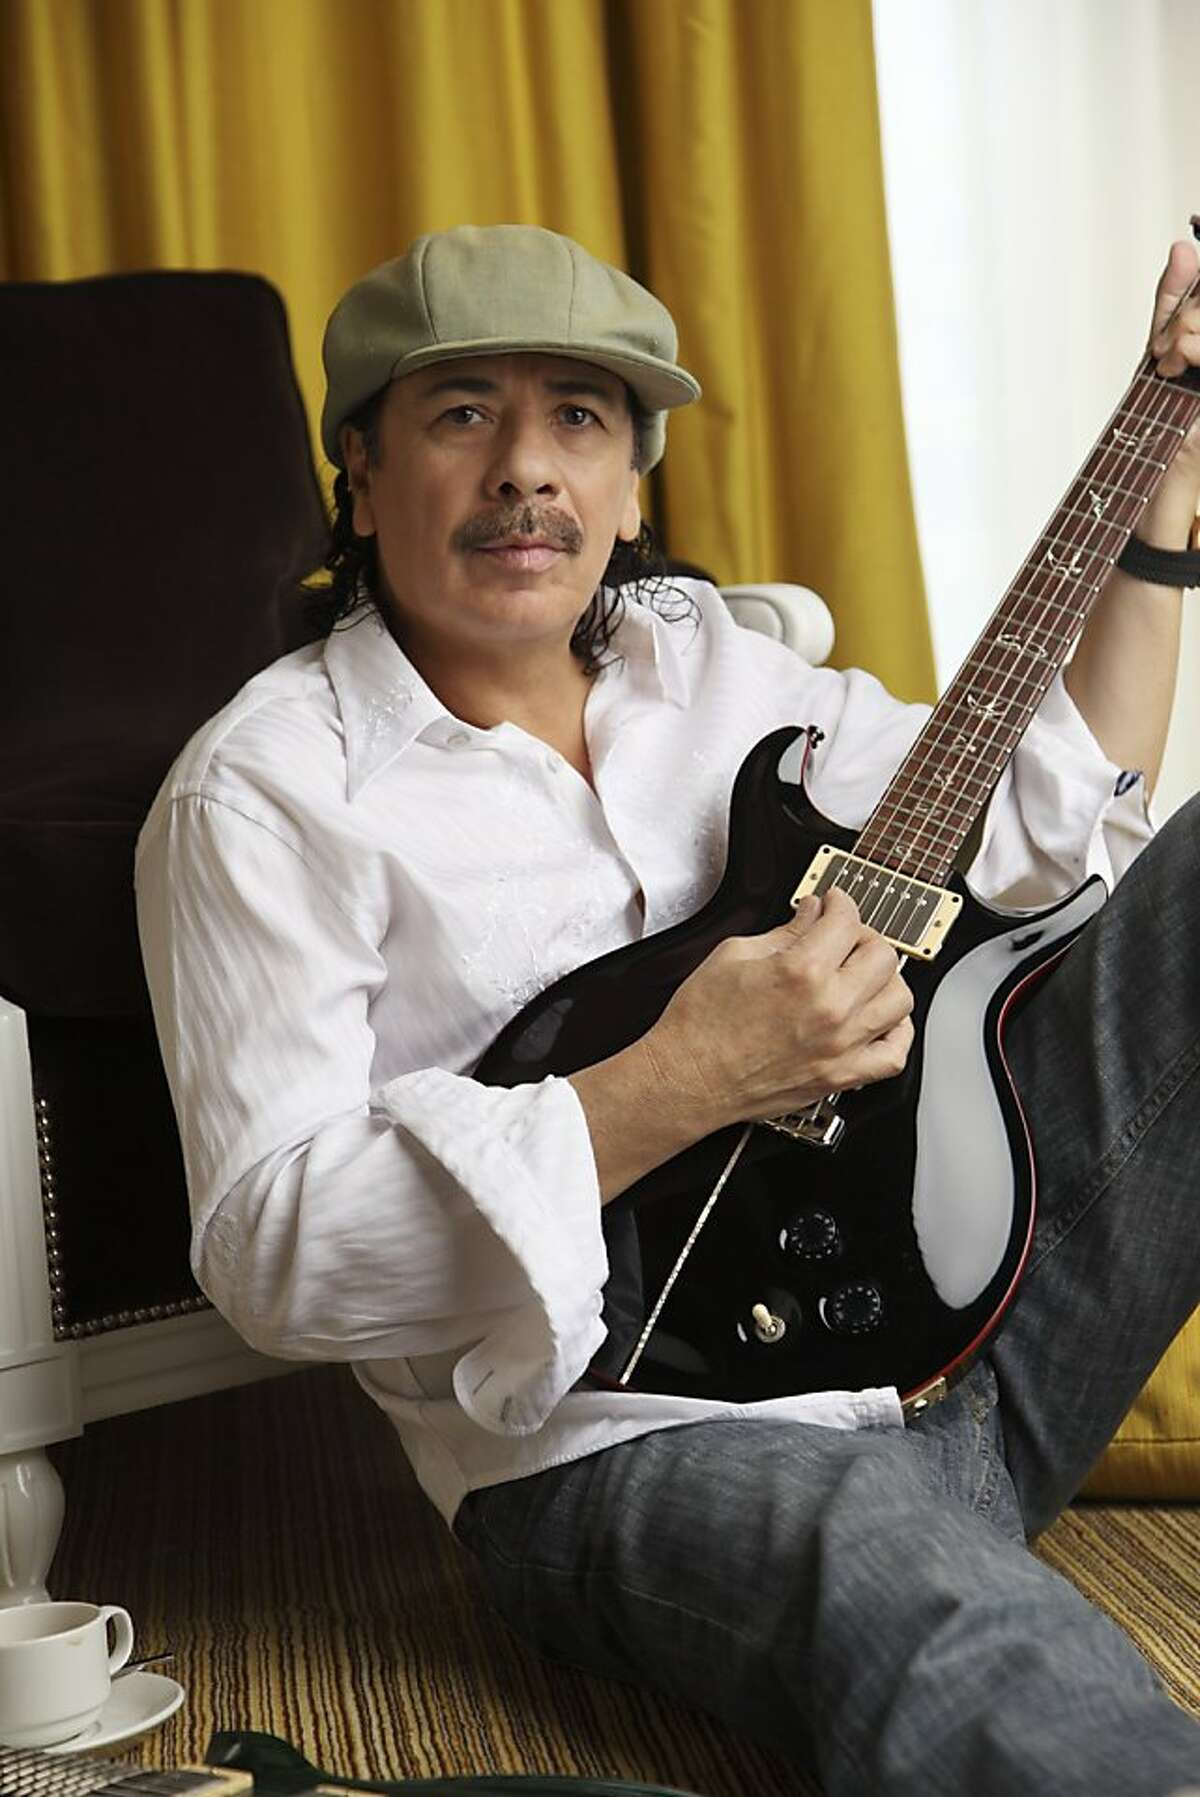 Carlos Santana will perform with the Oakland East Bay Symphony in the orchestra's season opener